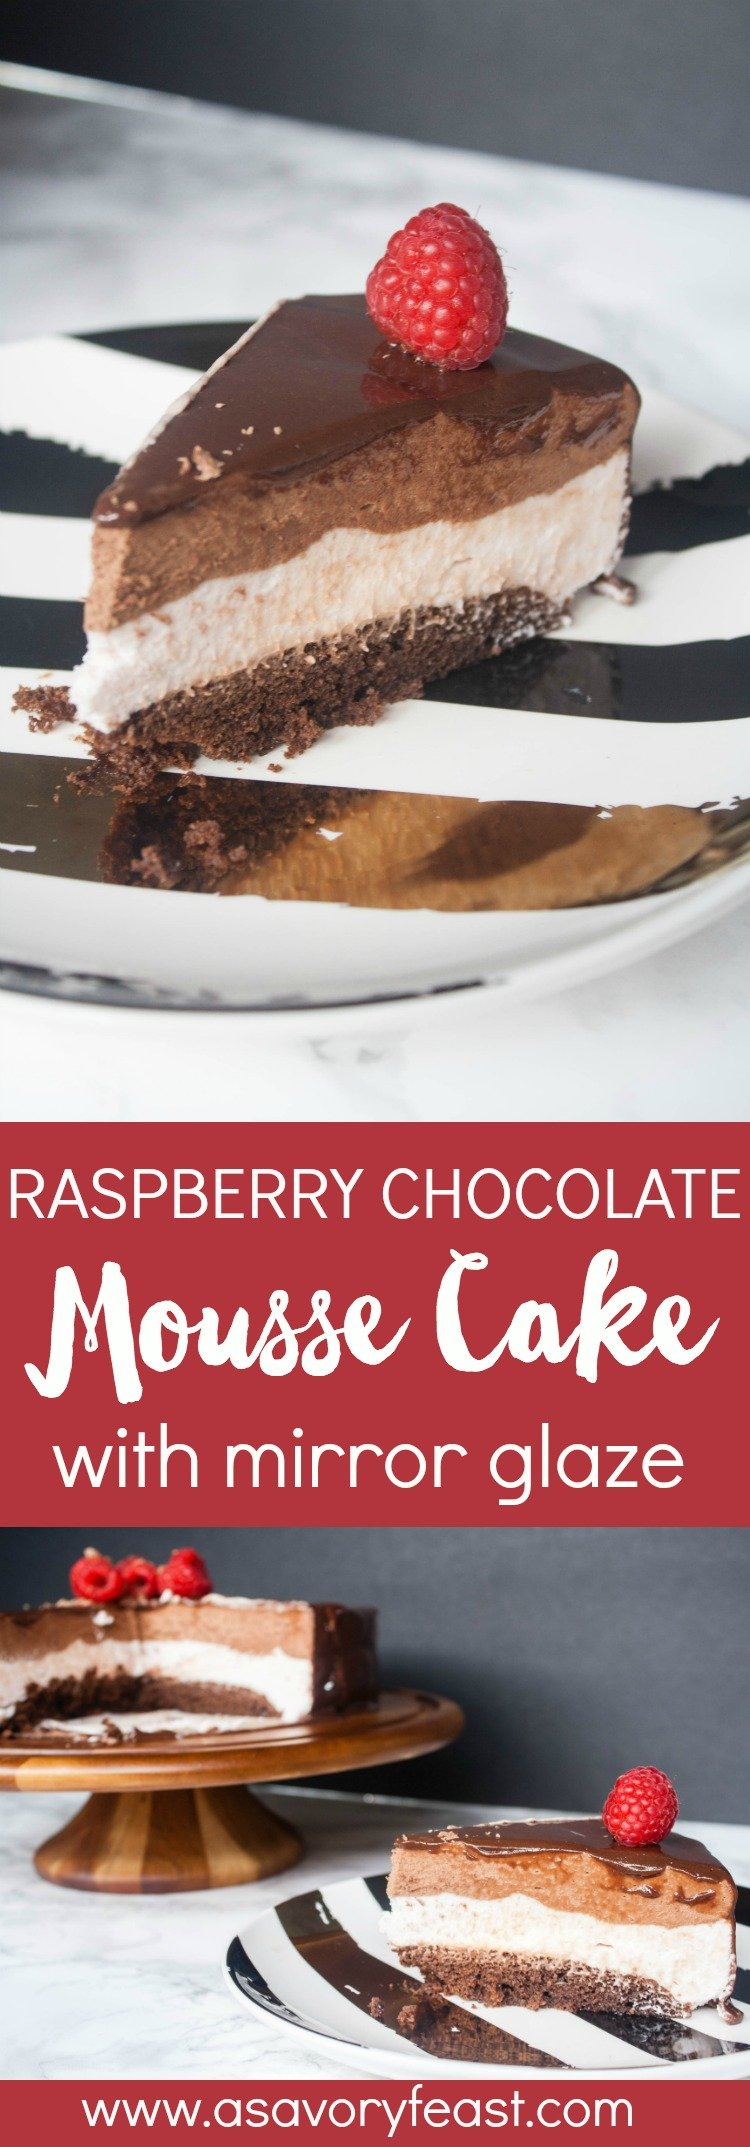 Raspberry Layer Mousse Cake